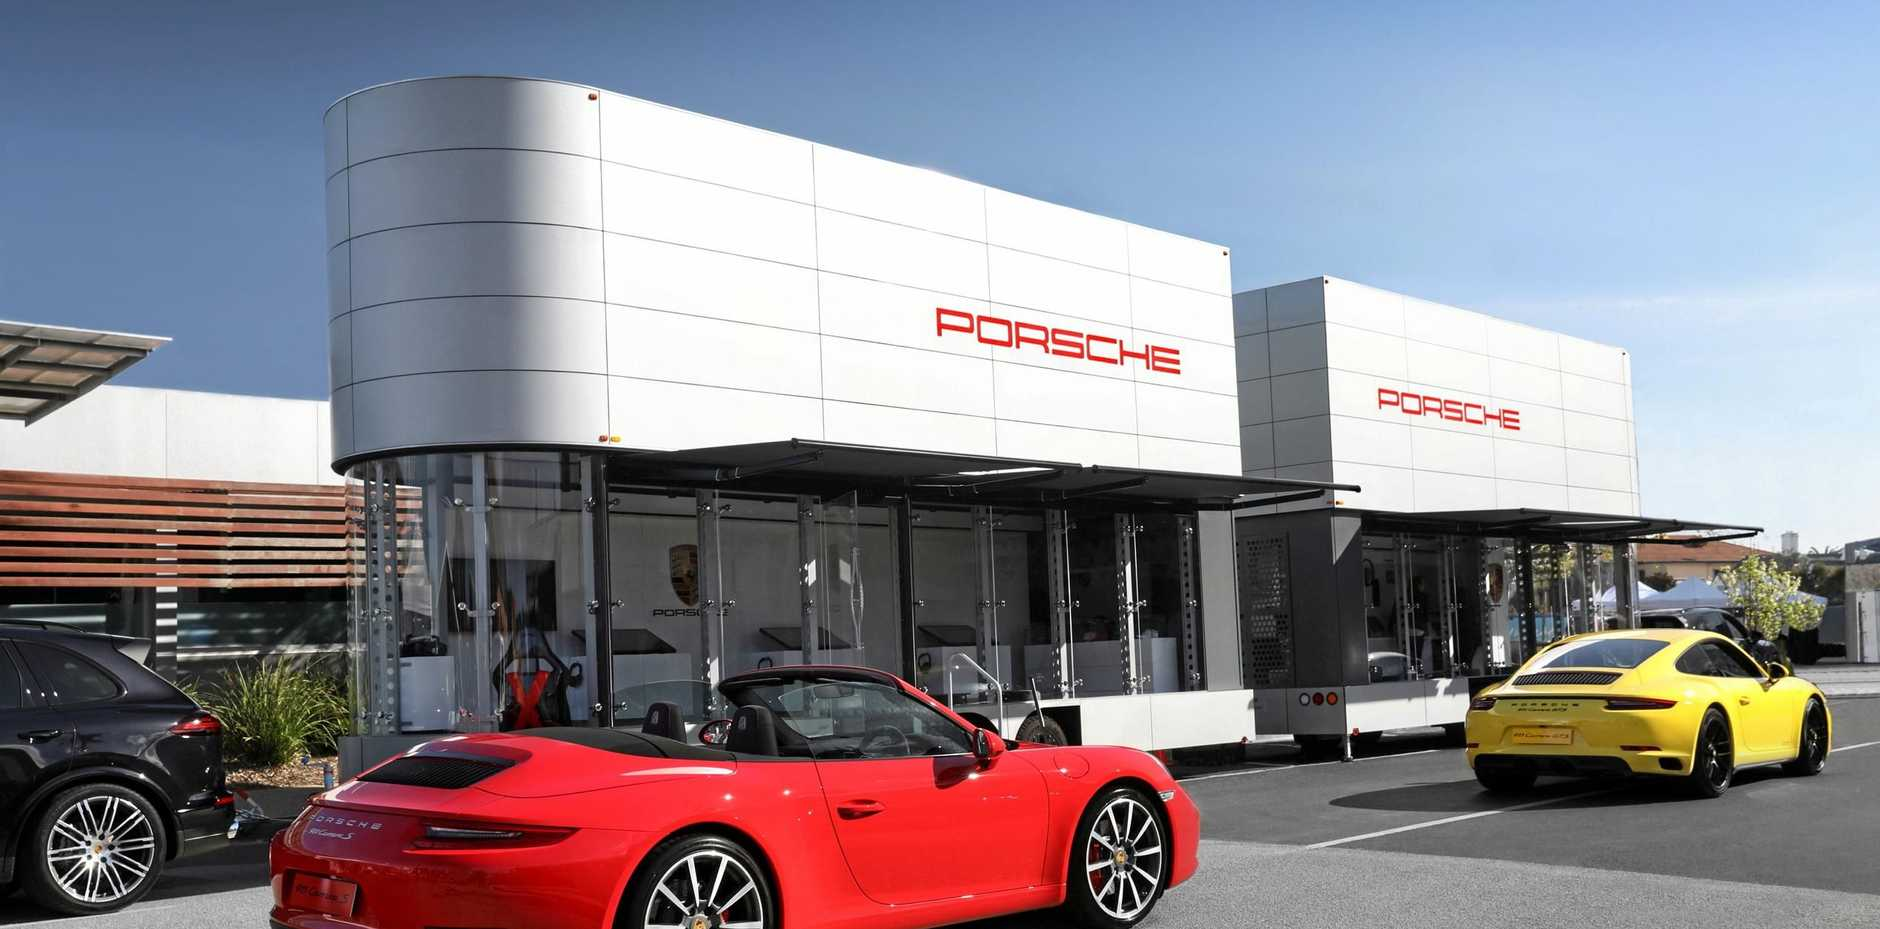 Ever wanted to drive a Porsche? Now you can | News Mail